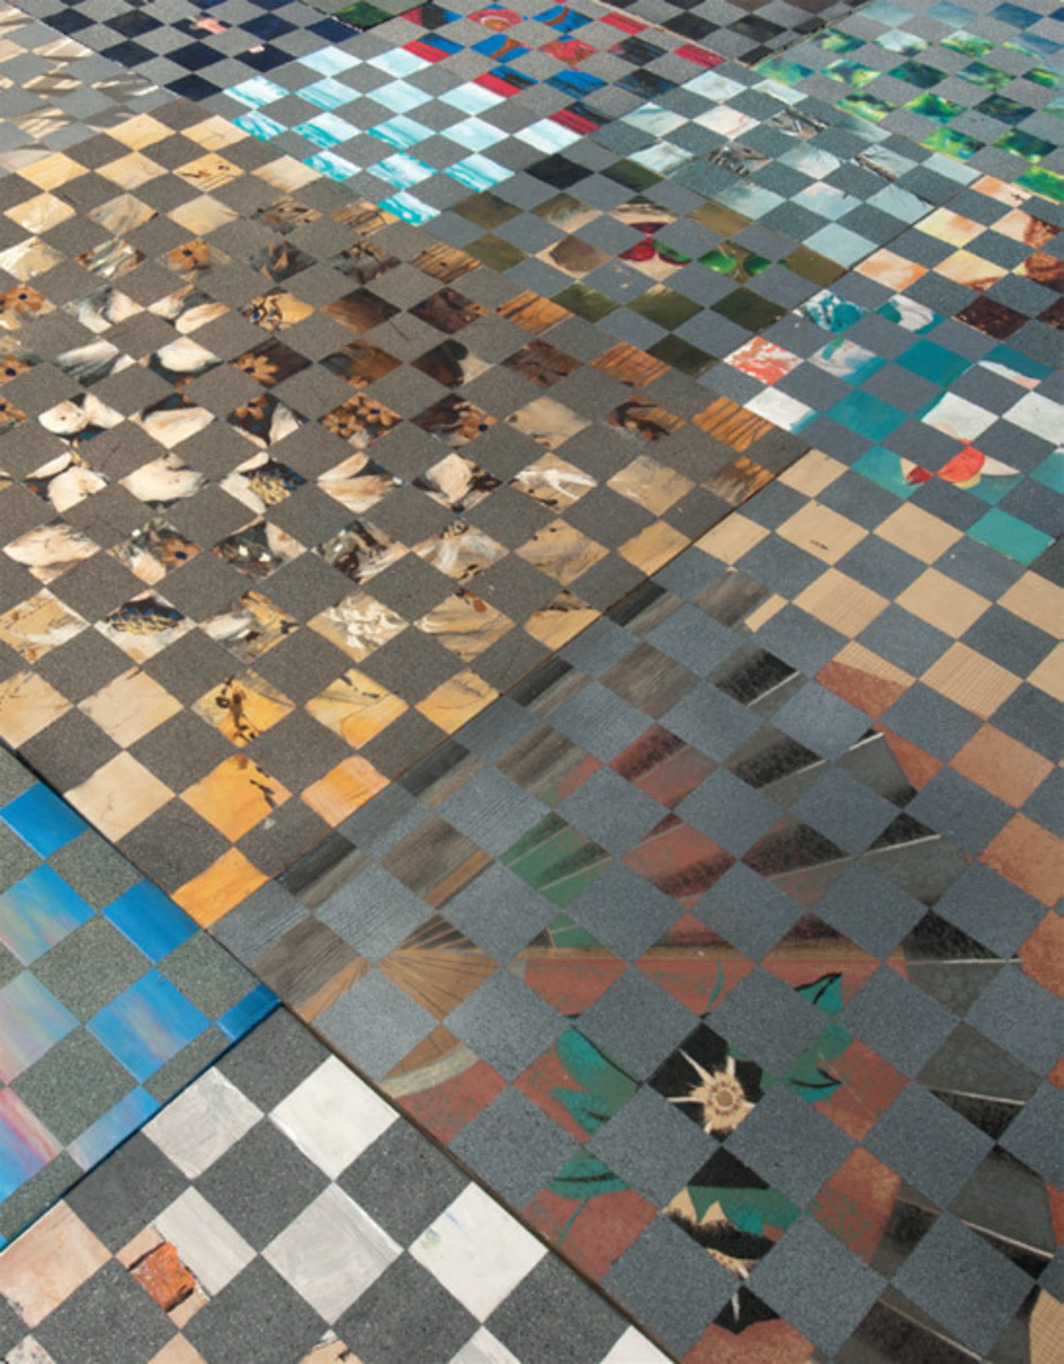 Ry Rocklen, Painting Tile Floor (detail), 2011–12, found paintings, concrete, wood, spray paint, dimensions variable. Installation view, Los Angeles Municipal Art Gallery, Barnsdall Art Park.